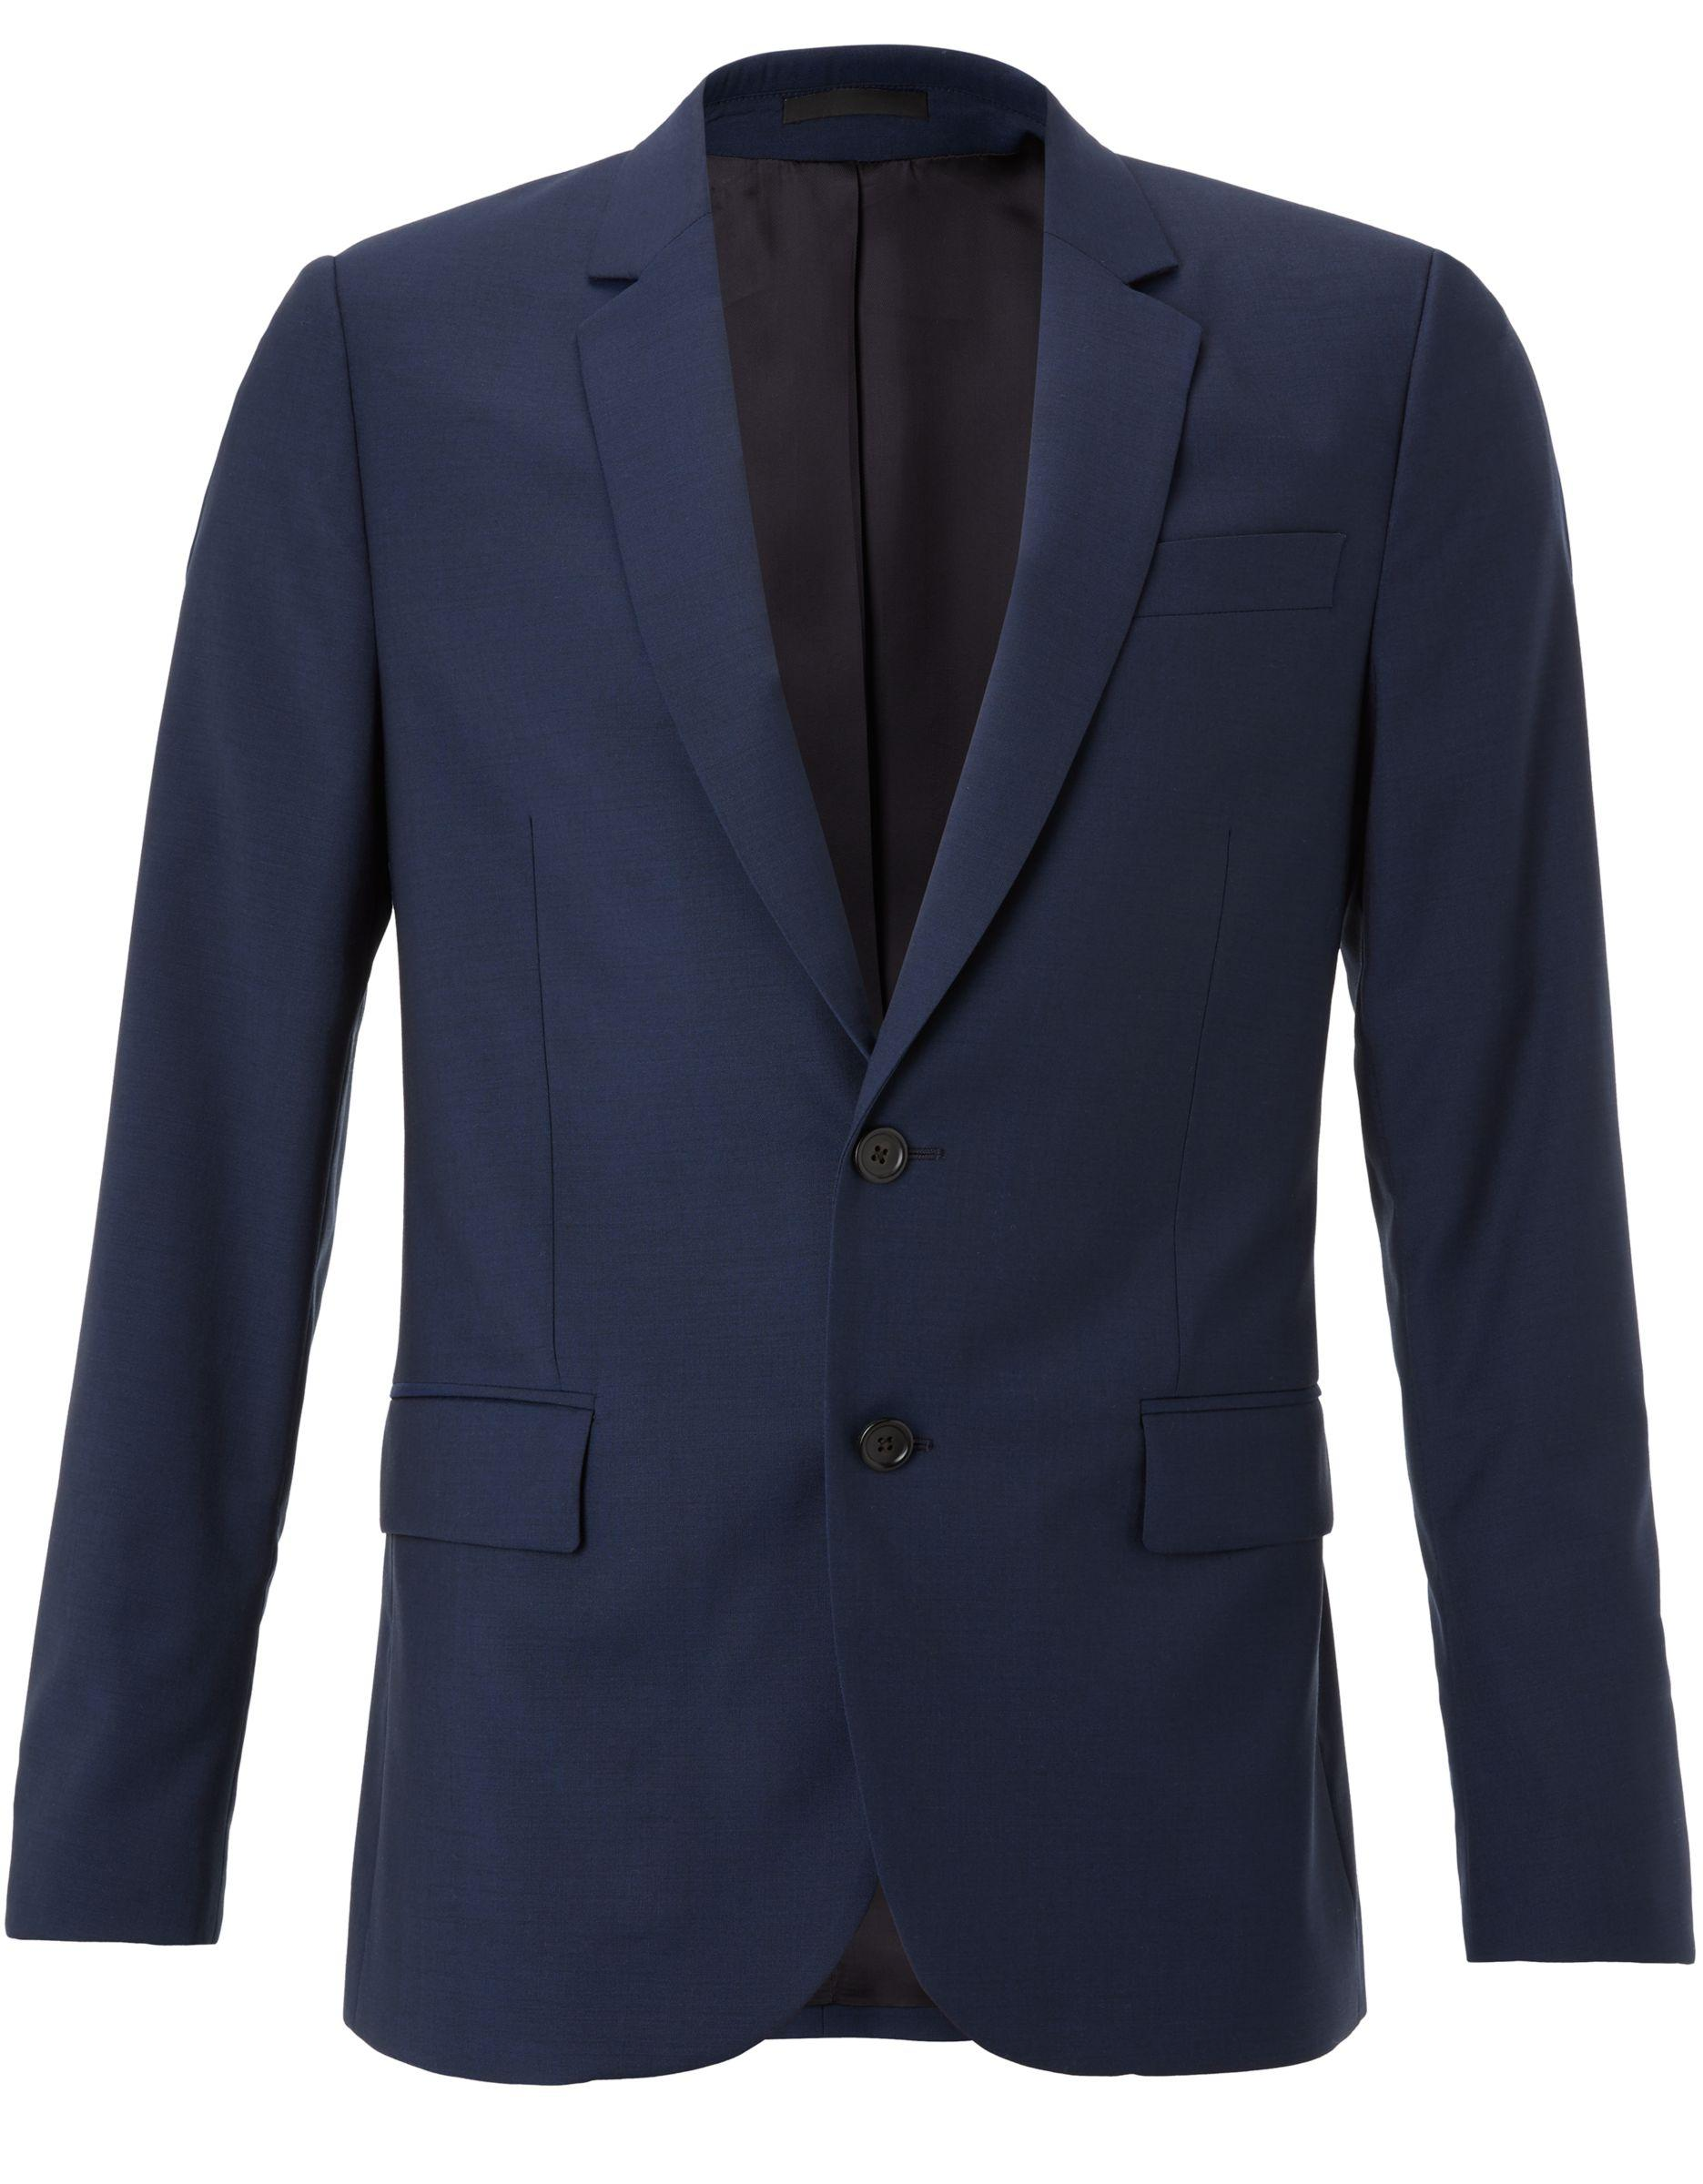 Paul Smith Ps Wool Mohair Tailored Fit Suit Jacket in Navy (Blue) for Men